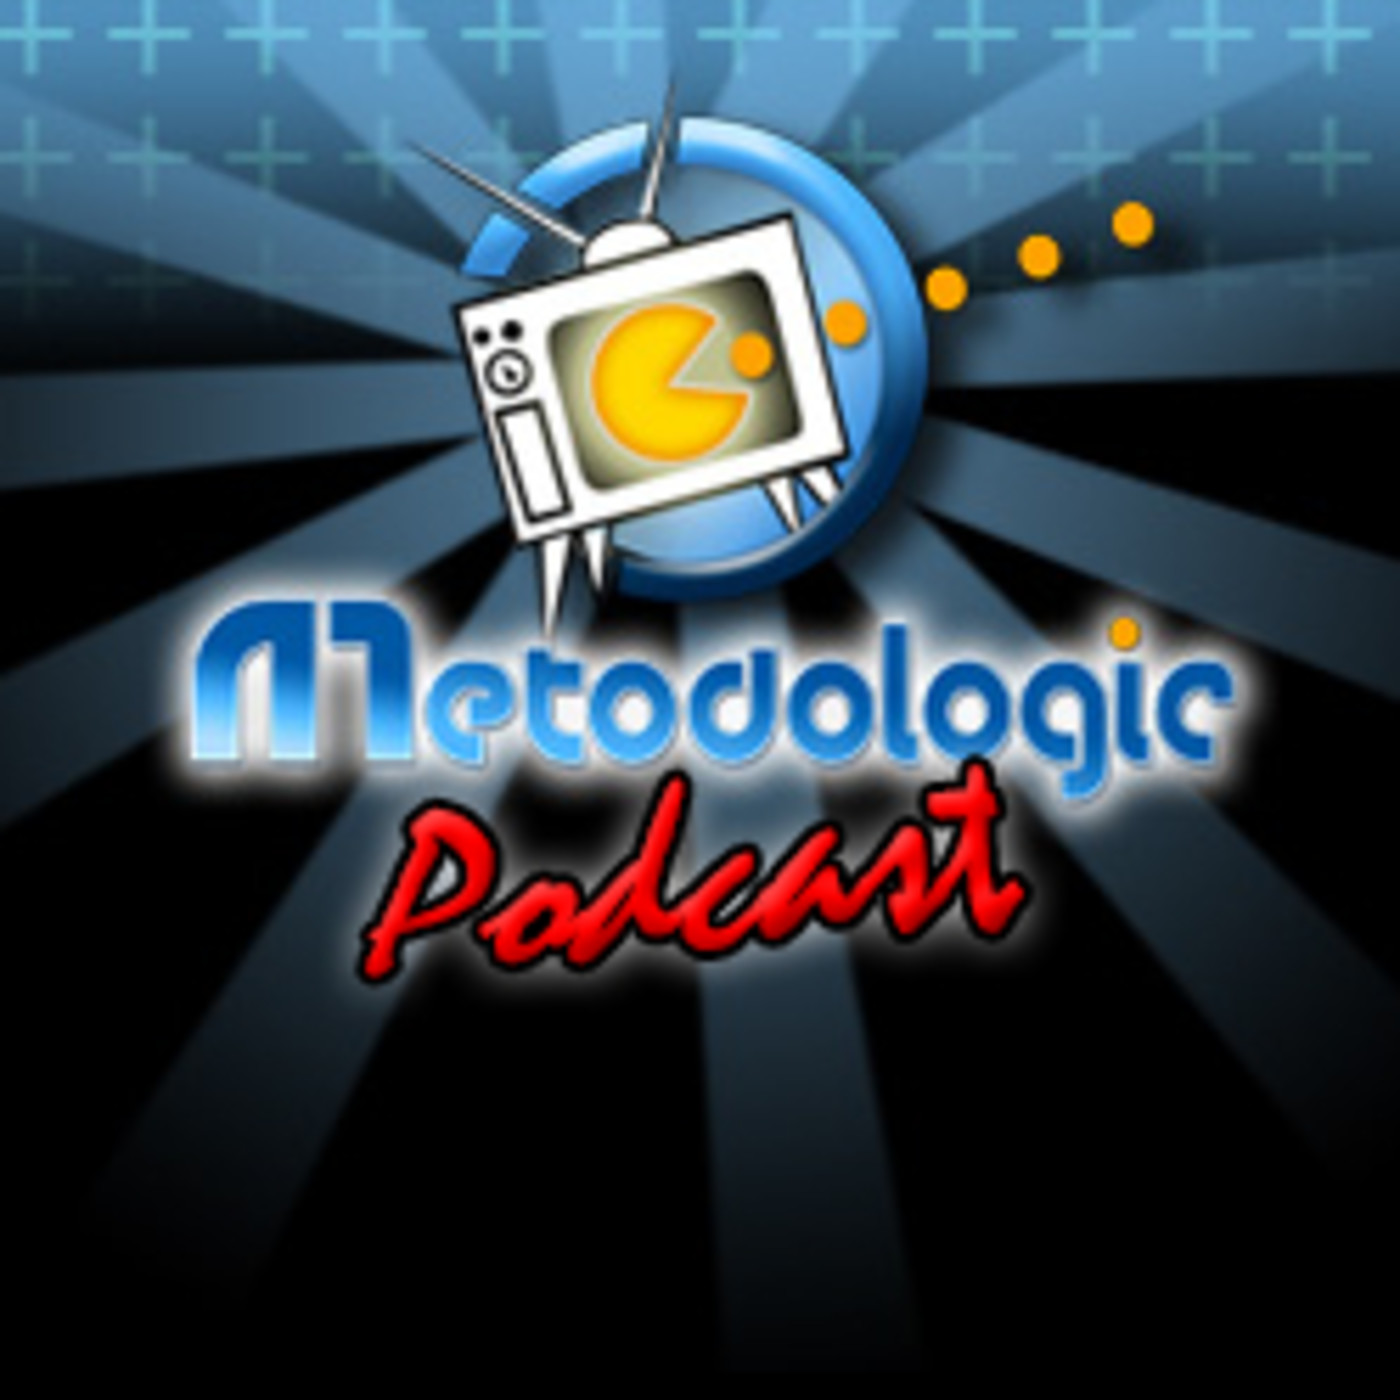 Metodologic Episodio 17: La leyenda de Switch